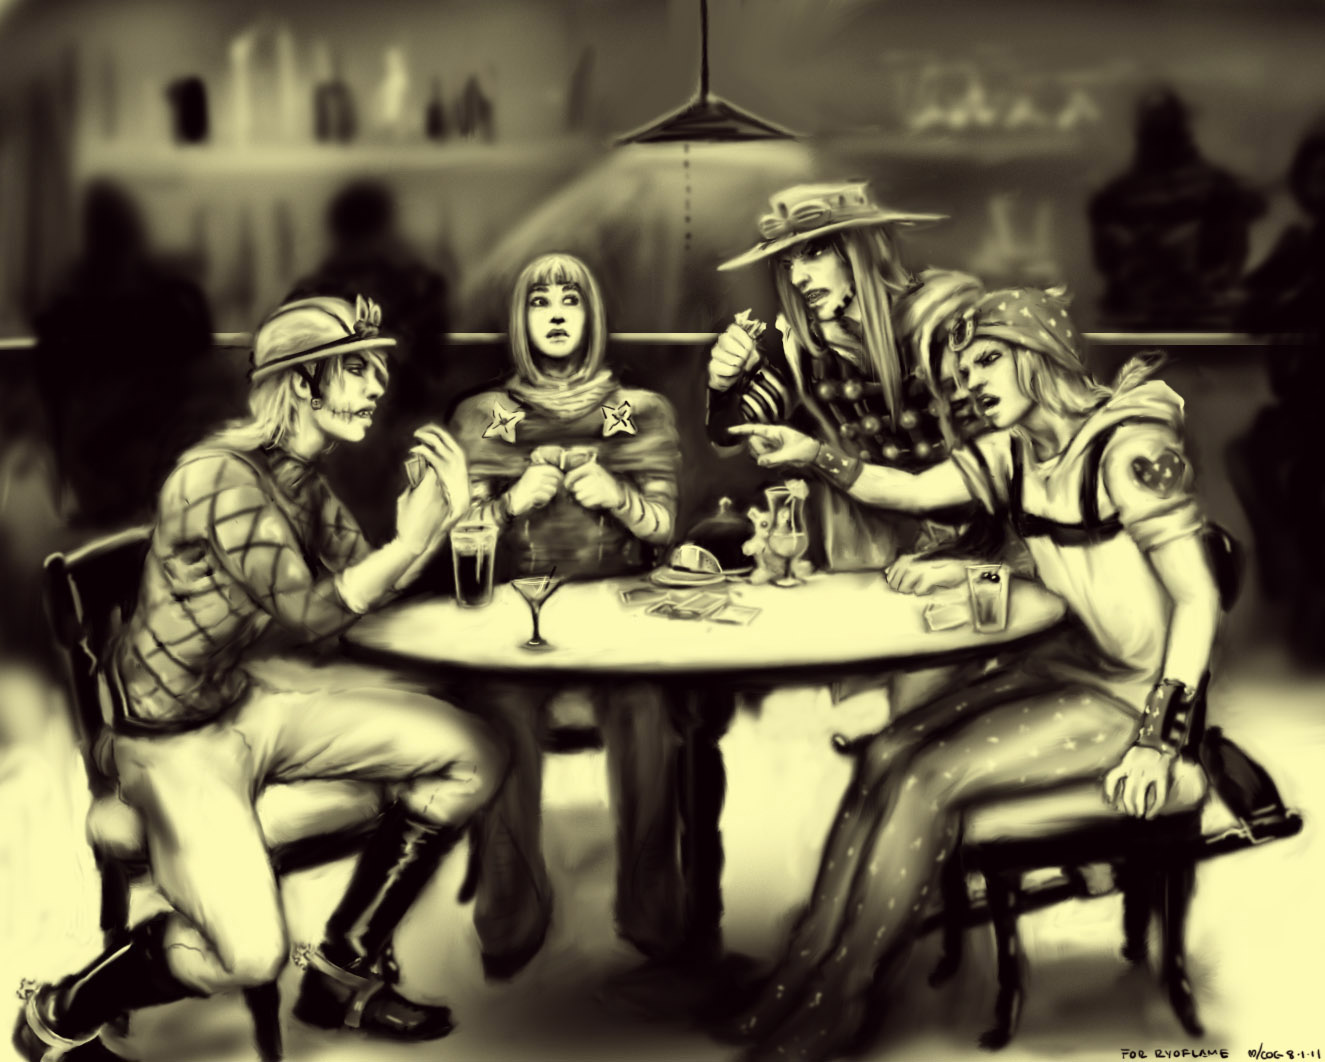 JJBA: Dio, HP, Gyro, And Jojo By Cogdis On DeviantArt